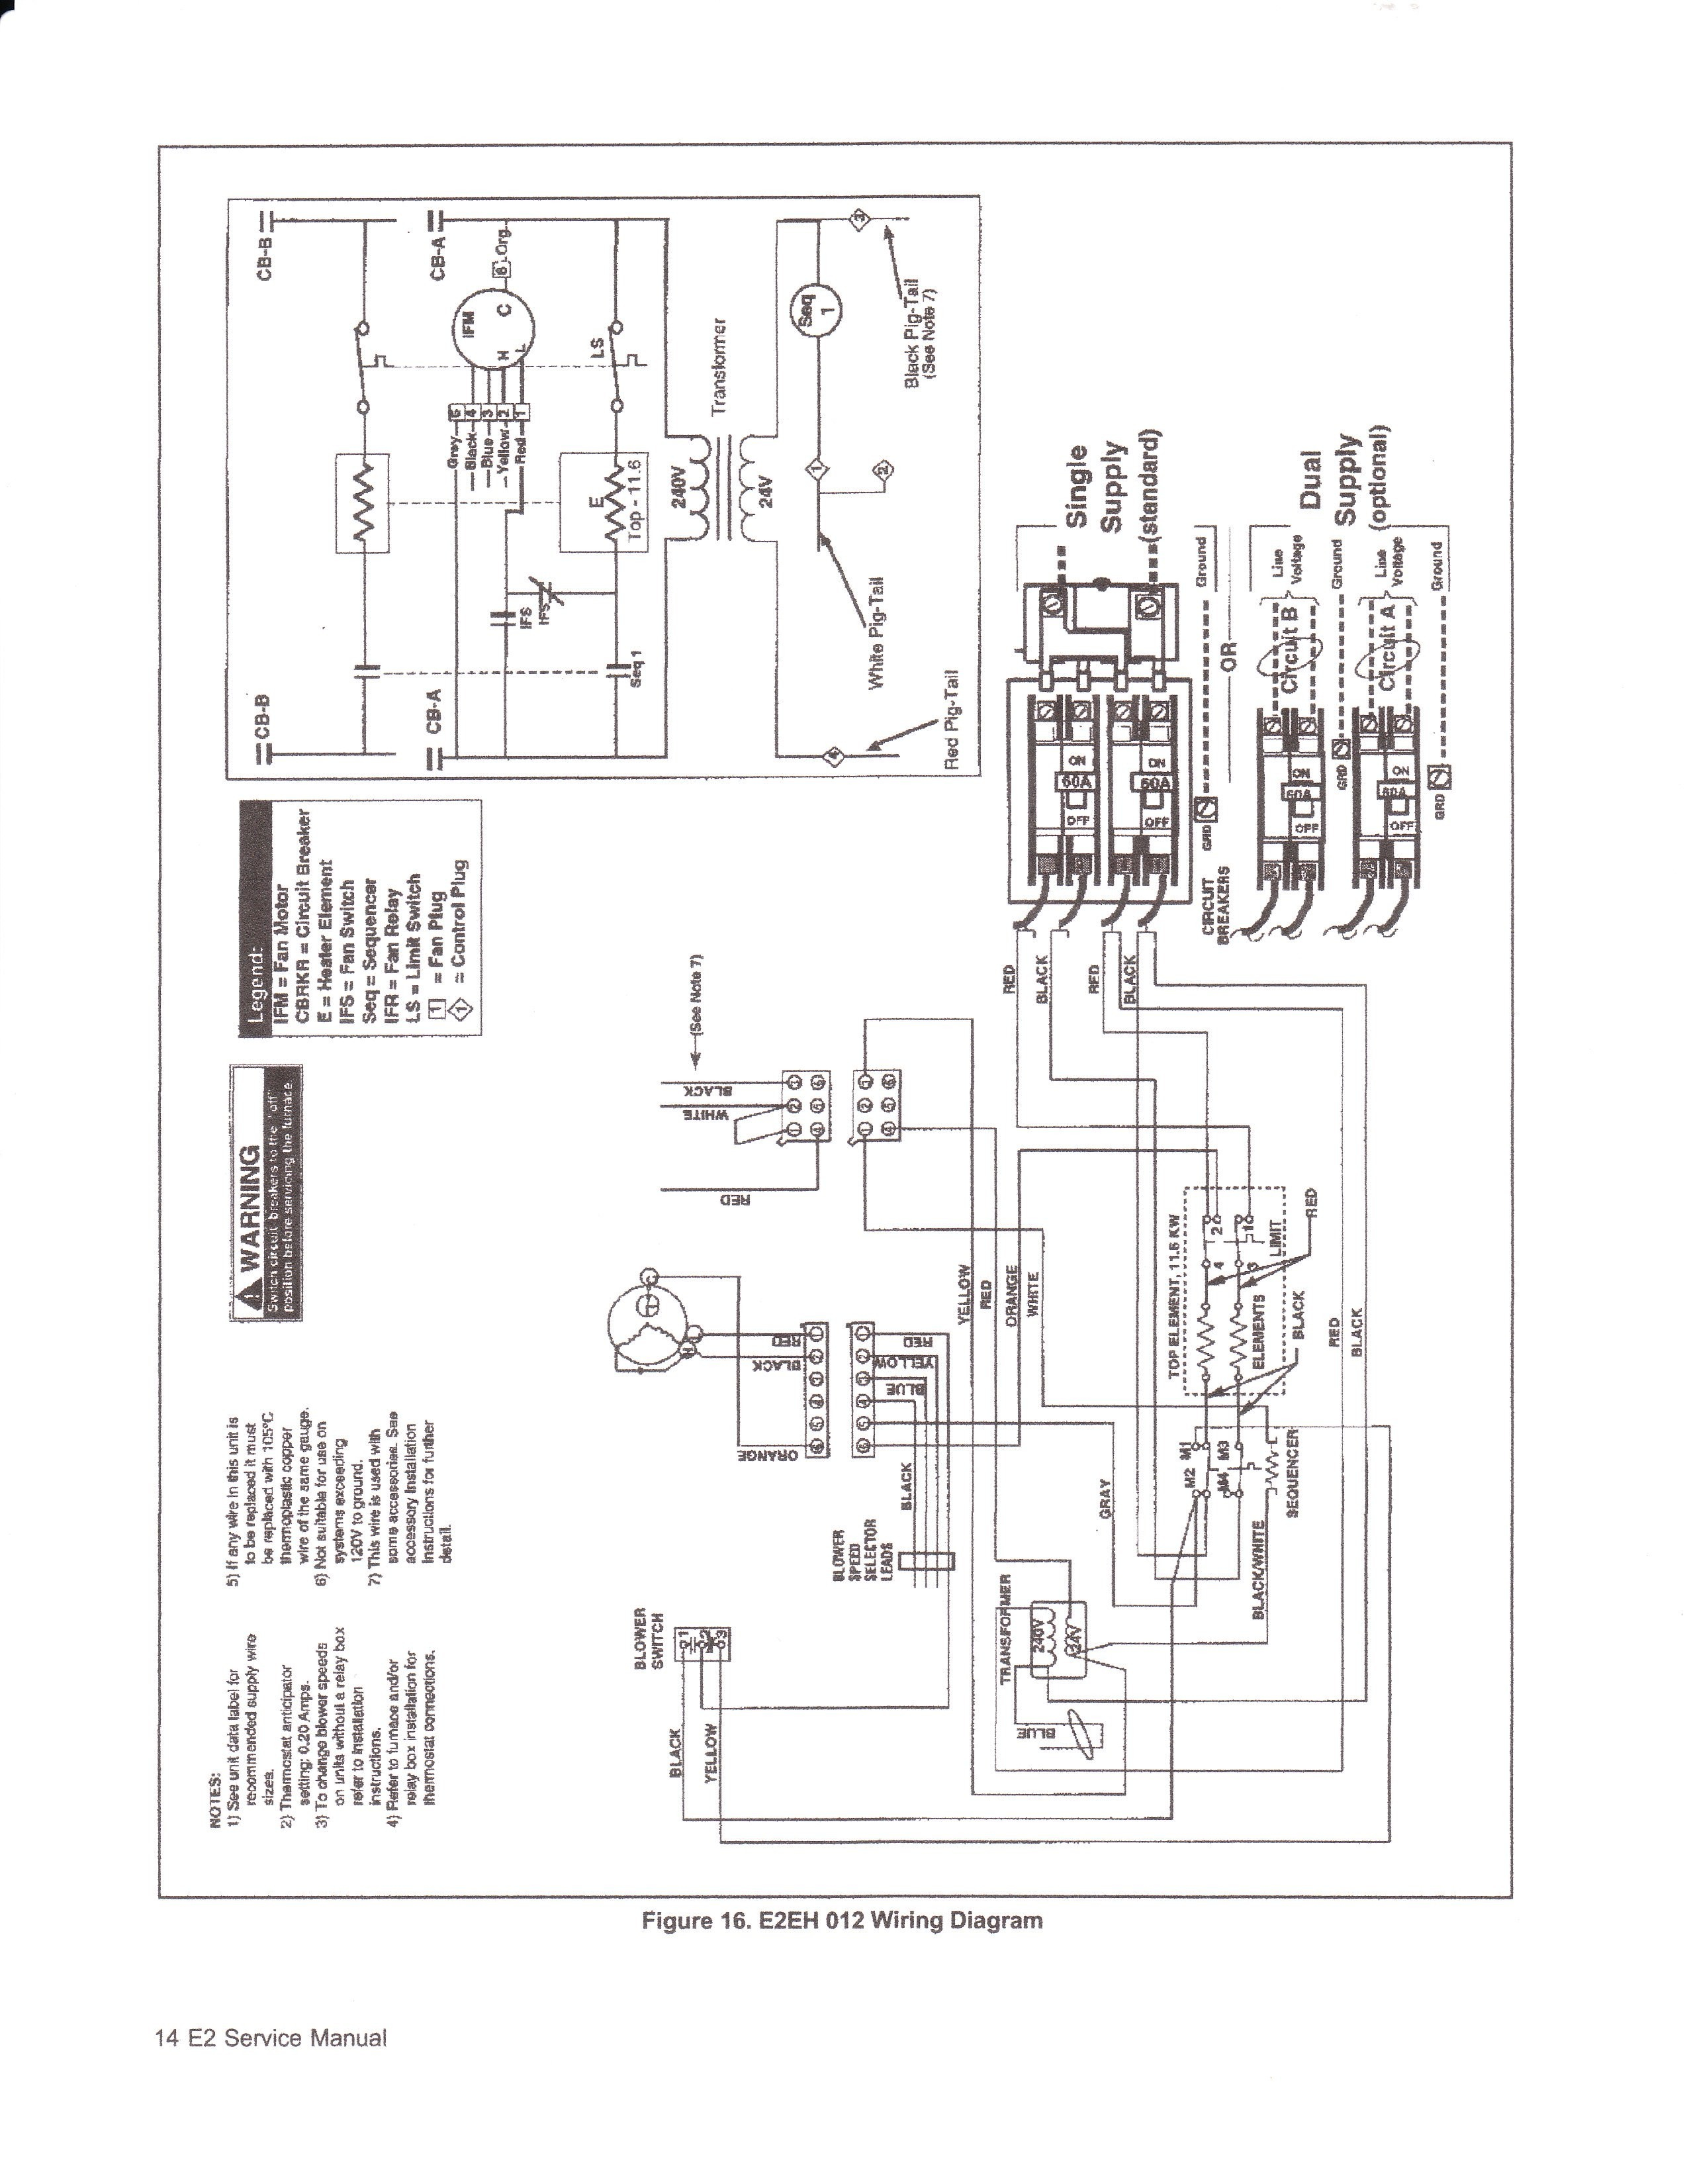 Mobile Home Furnace Ac Wiring Diagram | Wiring Schematic Diagram on mobile home stereo, mobile home pipes, mobile home dehumidifier, mobile home hvac, mobile home filters, mobile home financing, mobile home water softener, mobile home doors, mobile home wiring, mobile home flue, mobile home shingles, mobile home humidifier, mobile home condenser, mobile home lights, mobile home flame, mobile home concrete, mobile home crane, mobile home vents, mobile home sump pump, mobile home button,